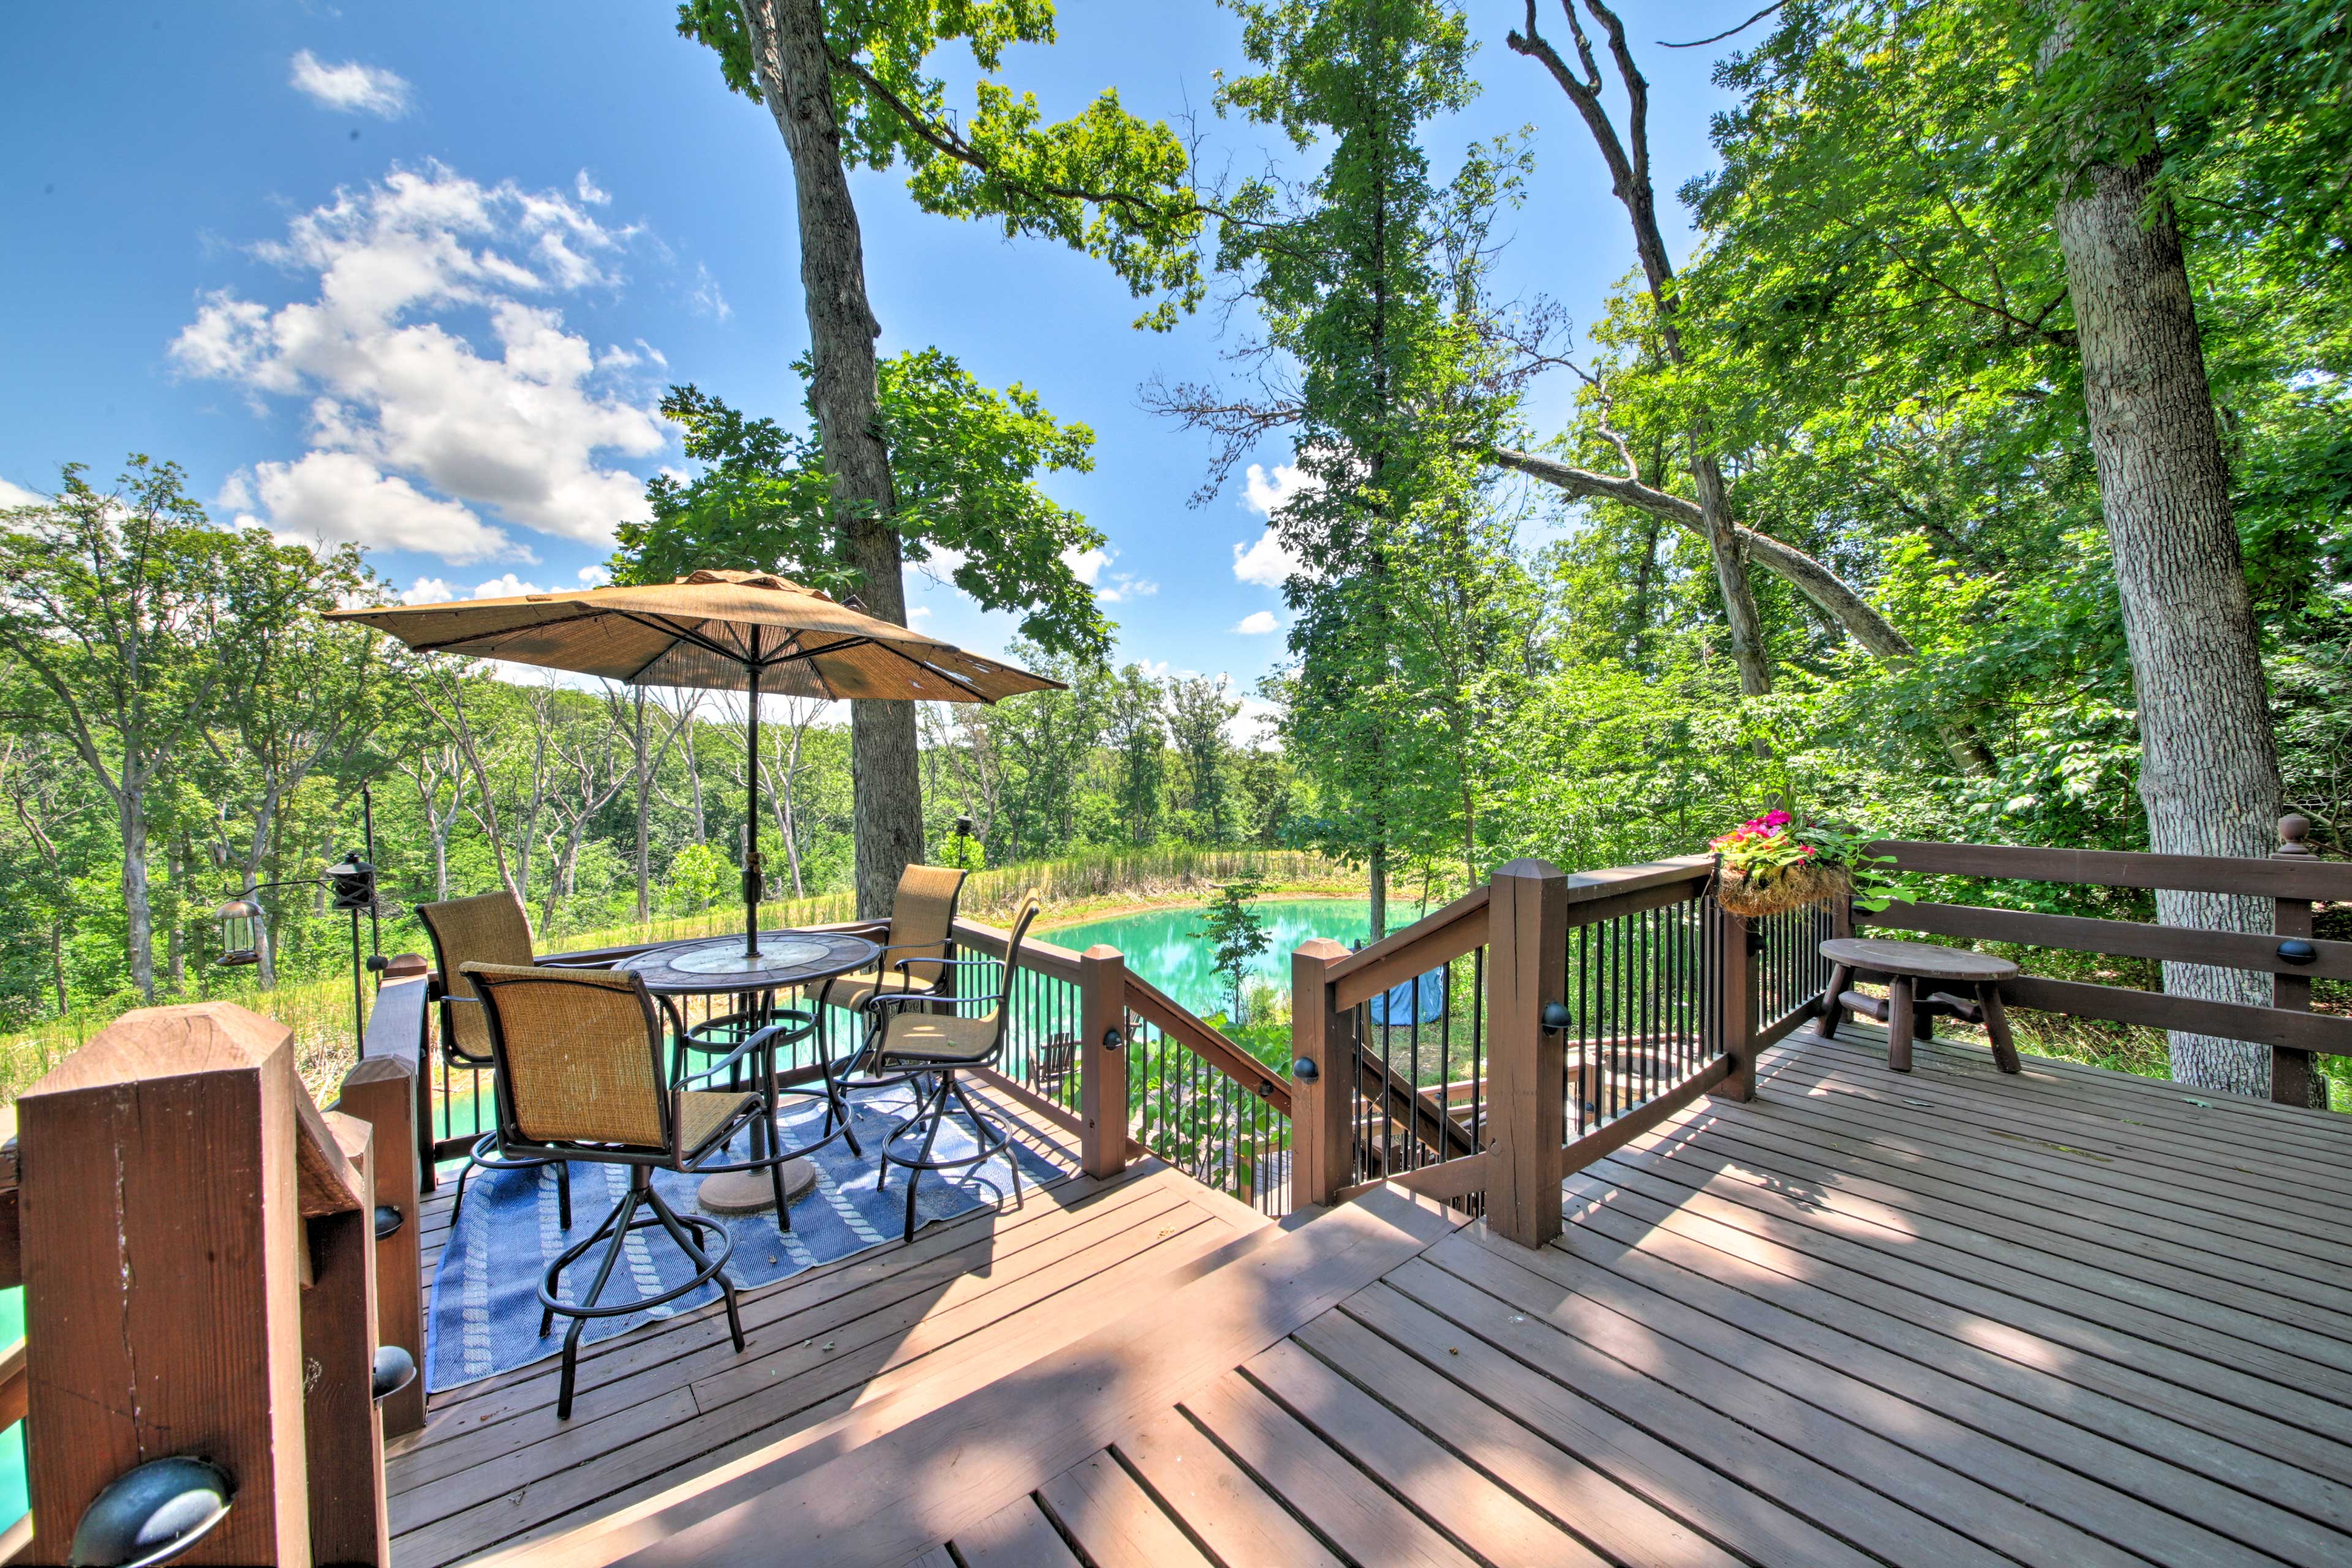 Enjoy access to all the amenities at the renowned Innsbrook Resort!